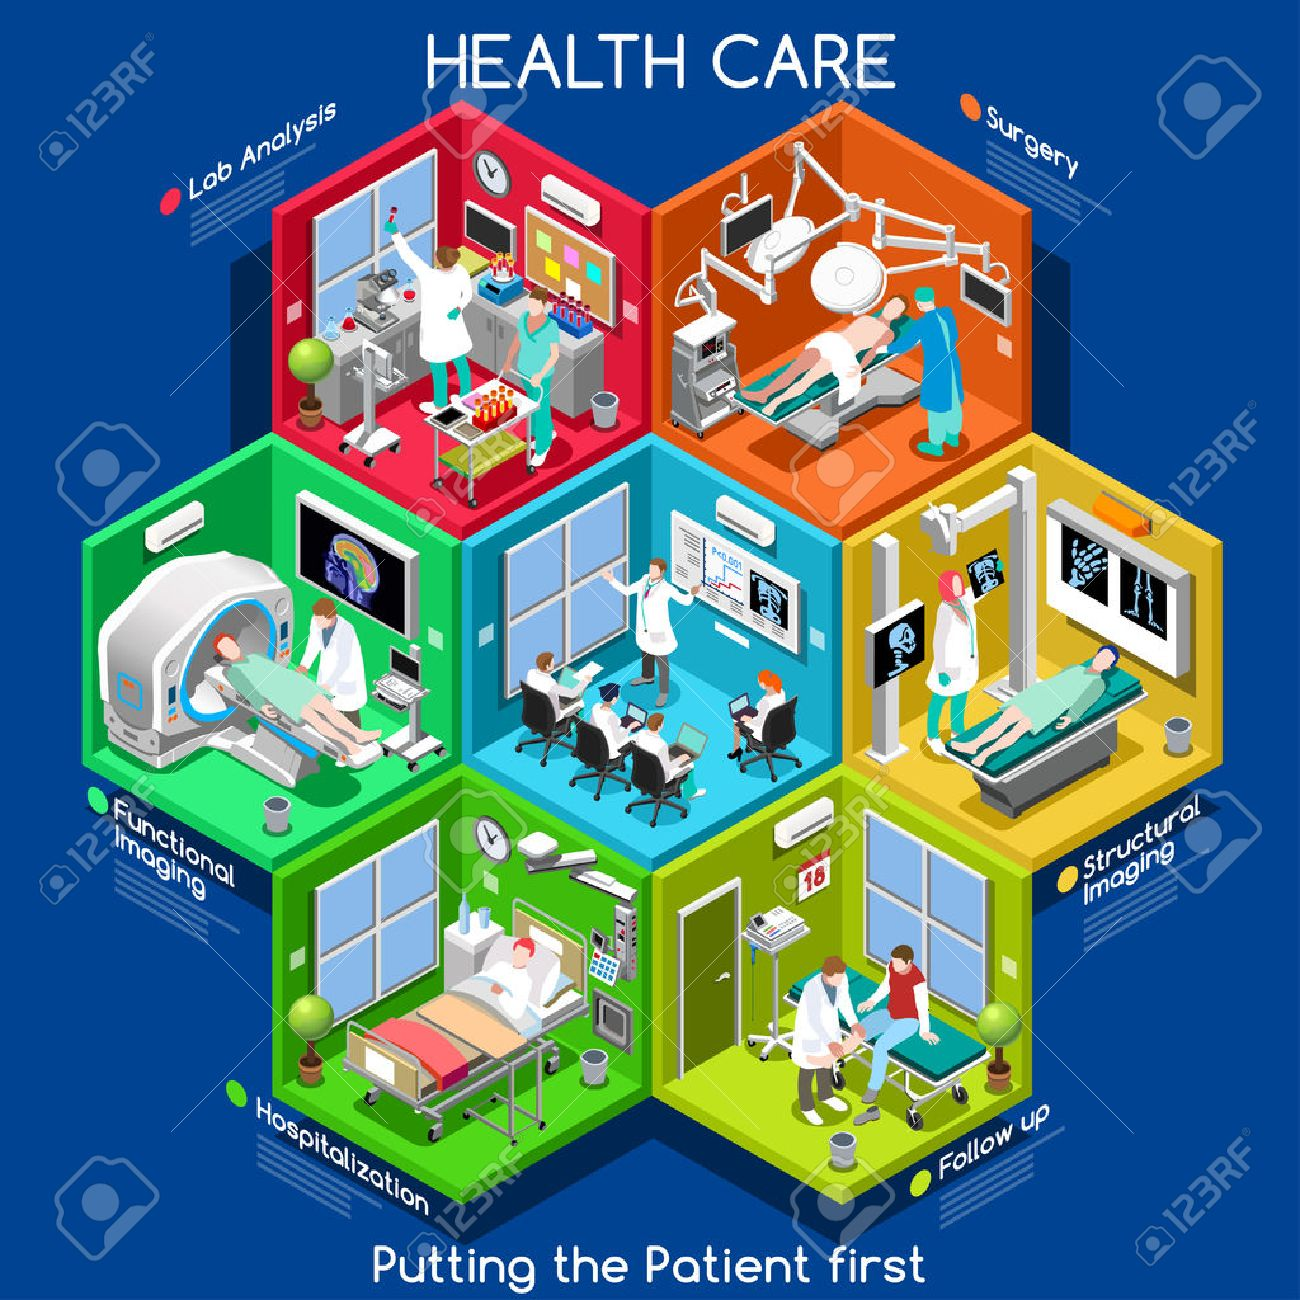 Clinical Trials and Healthcare. Hospital Departments with People NEW bright palette 3D Flat Vector Icon Set. Rooms with Patients Doctors Nurses Scrubs Staff Support Workers. Putting the Patient 1ST Stock Vector - 46505465